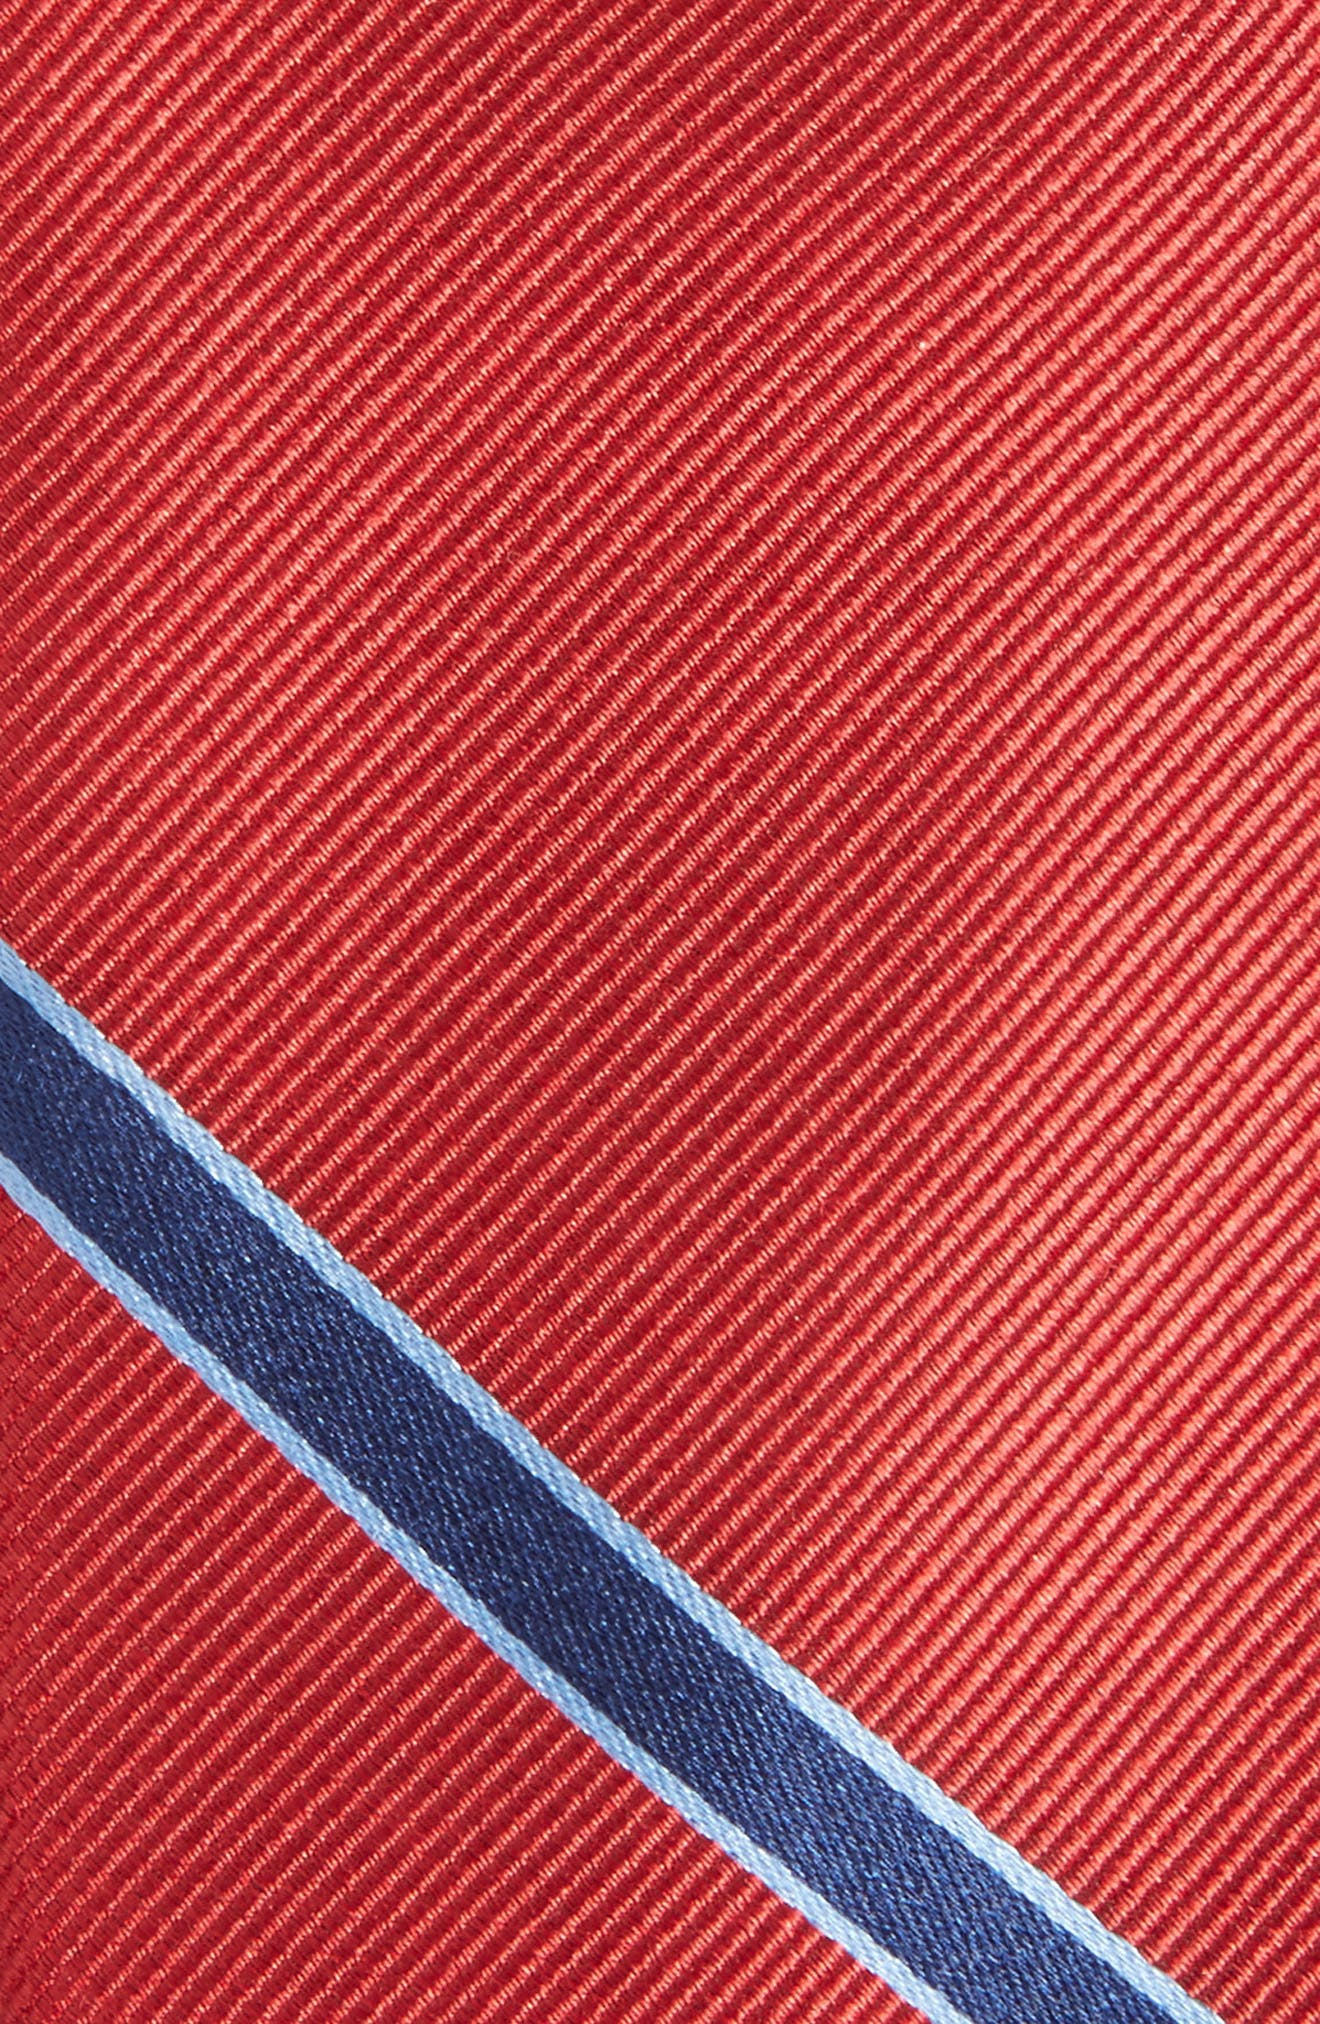 Triple Play Stripe Silk Tie,                             Alternate thumbnail 2, color,                             Red